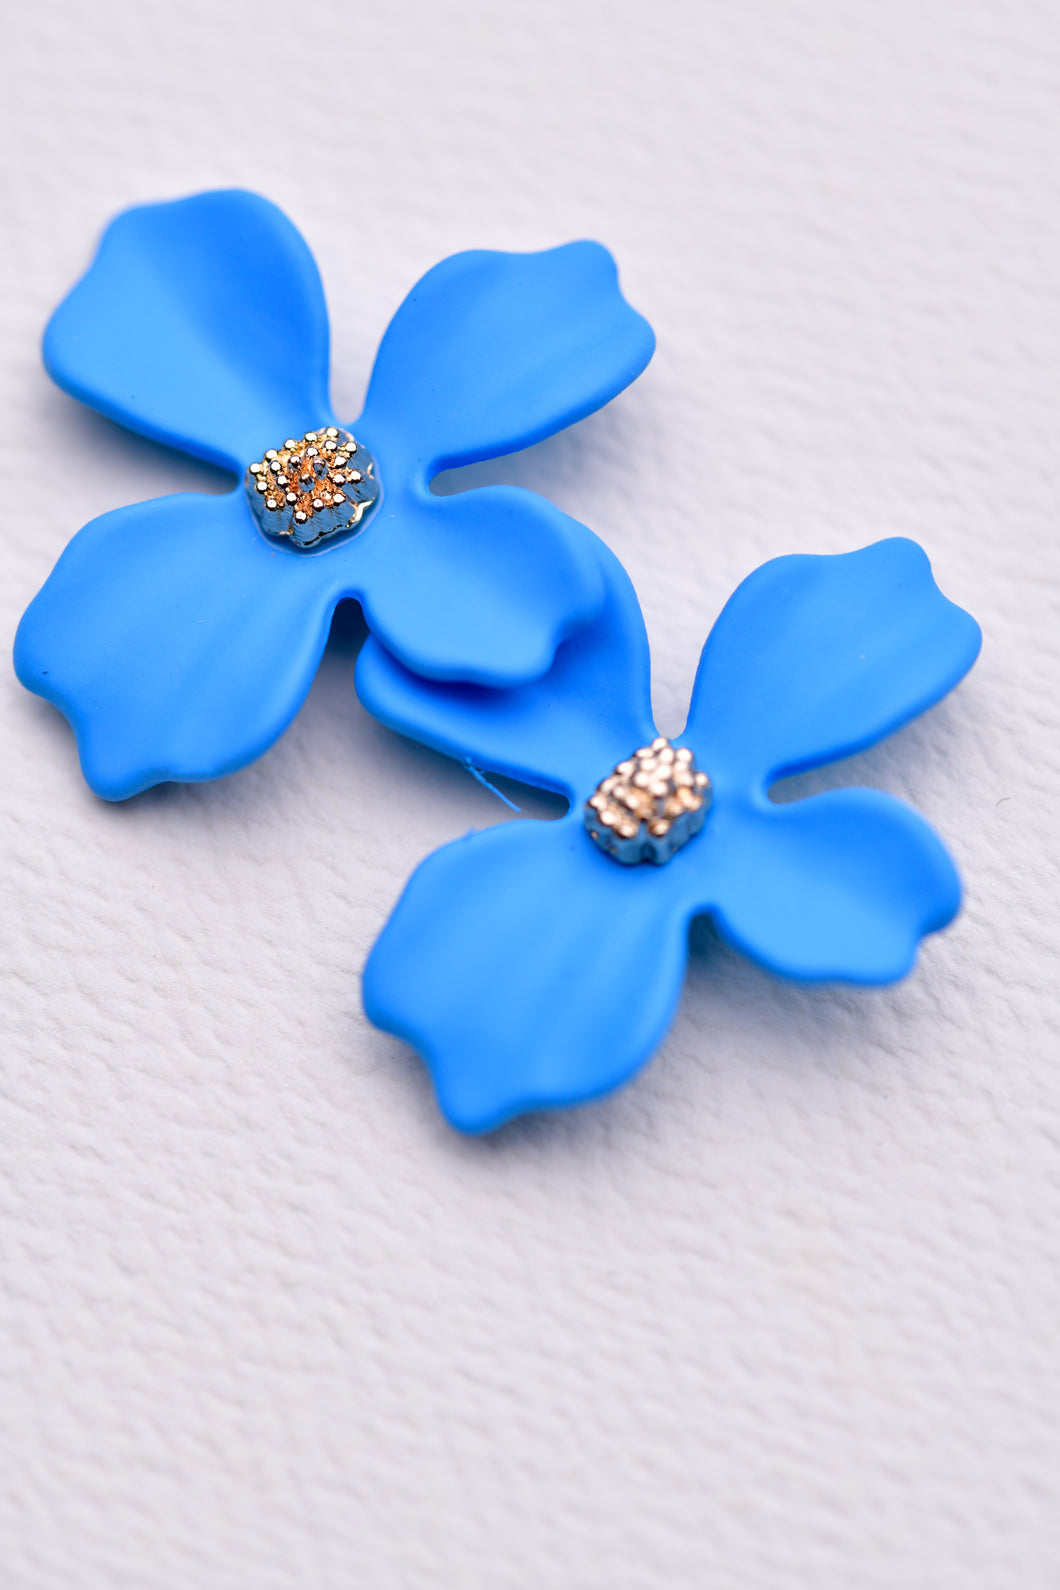 ZAFINO - SMALL ORCHID FLOWER STUD EARRING - BLUE